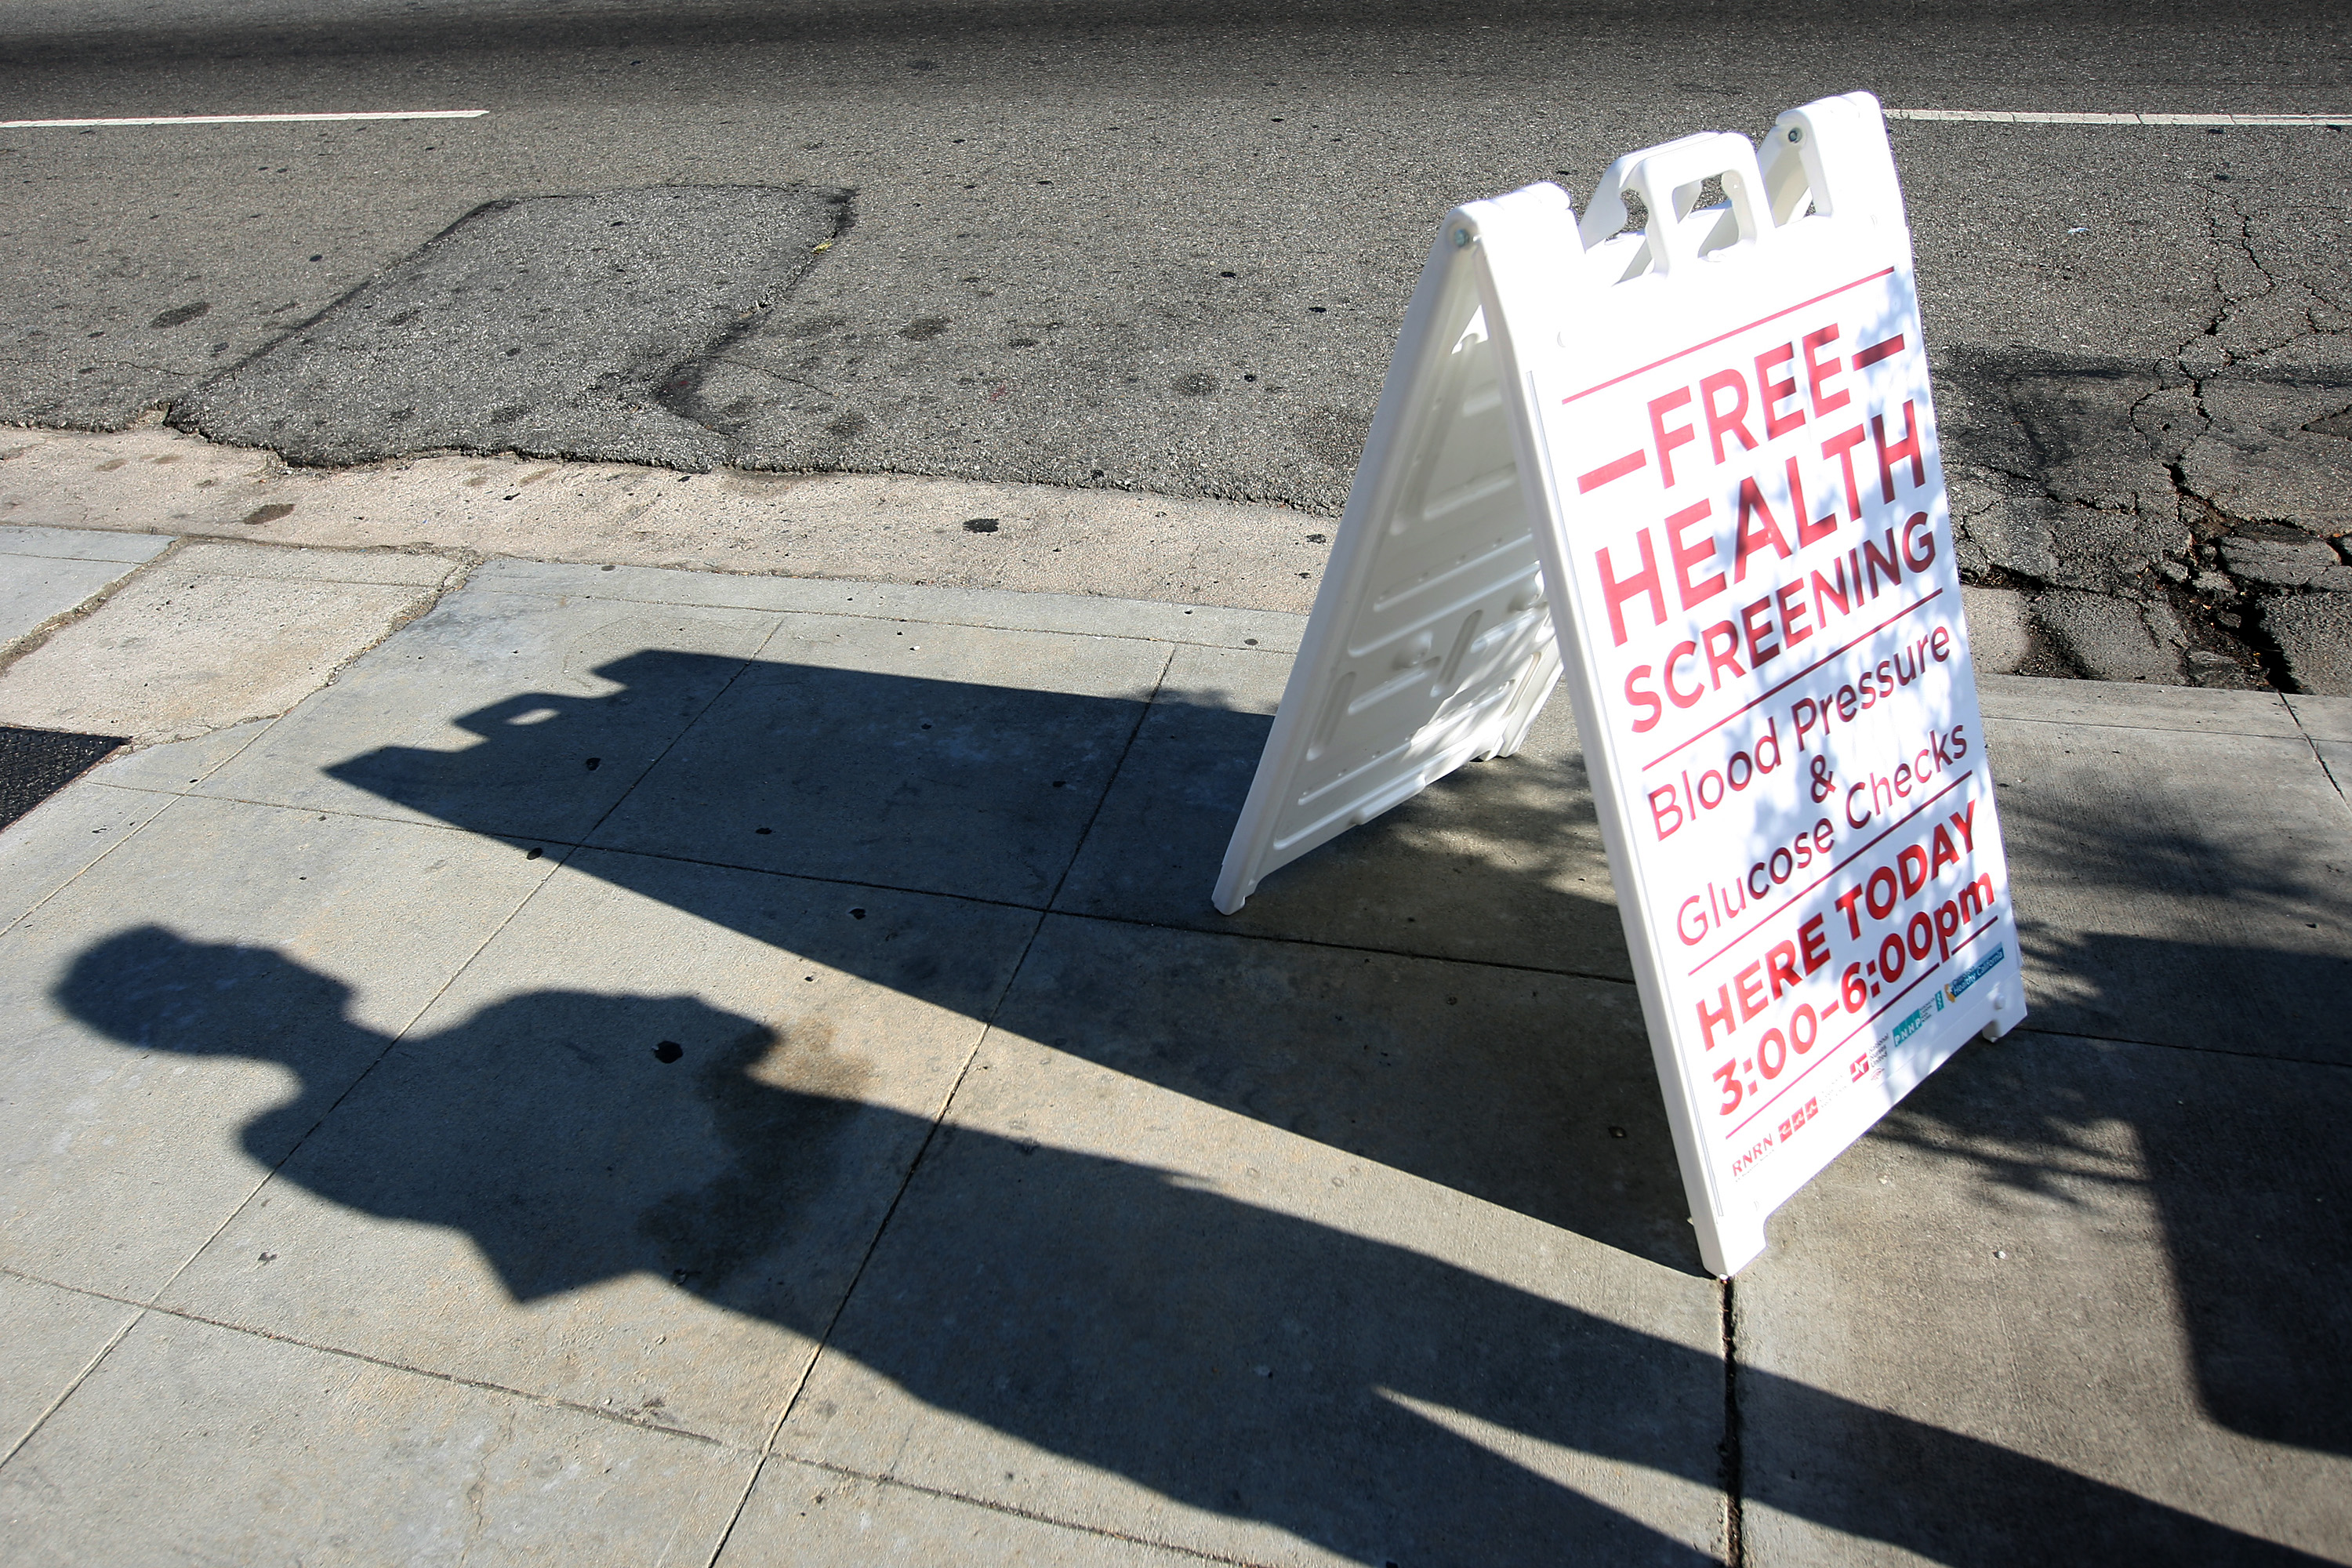 Health Care Activists Offer Free Health Screenings In Los Angeles